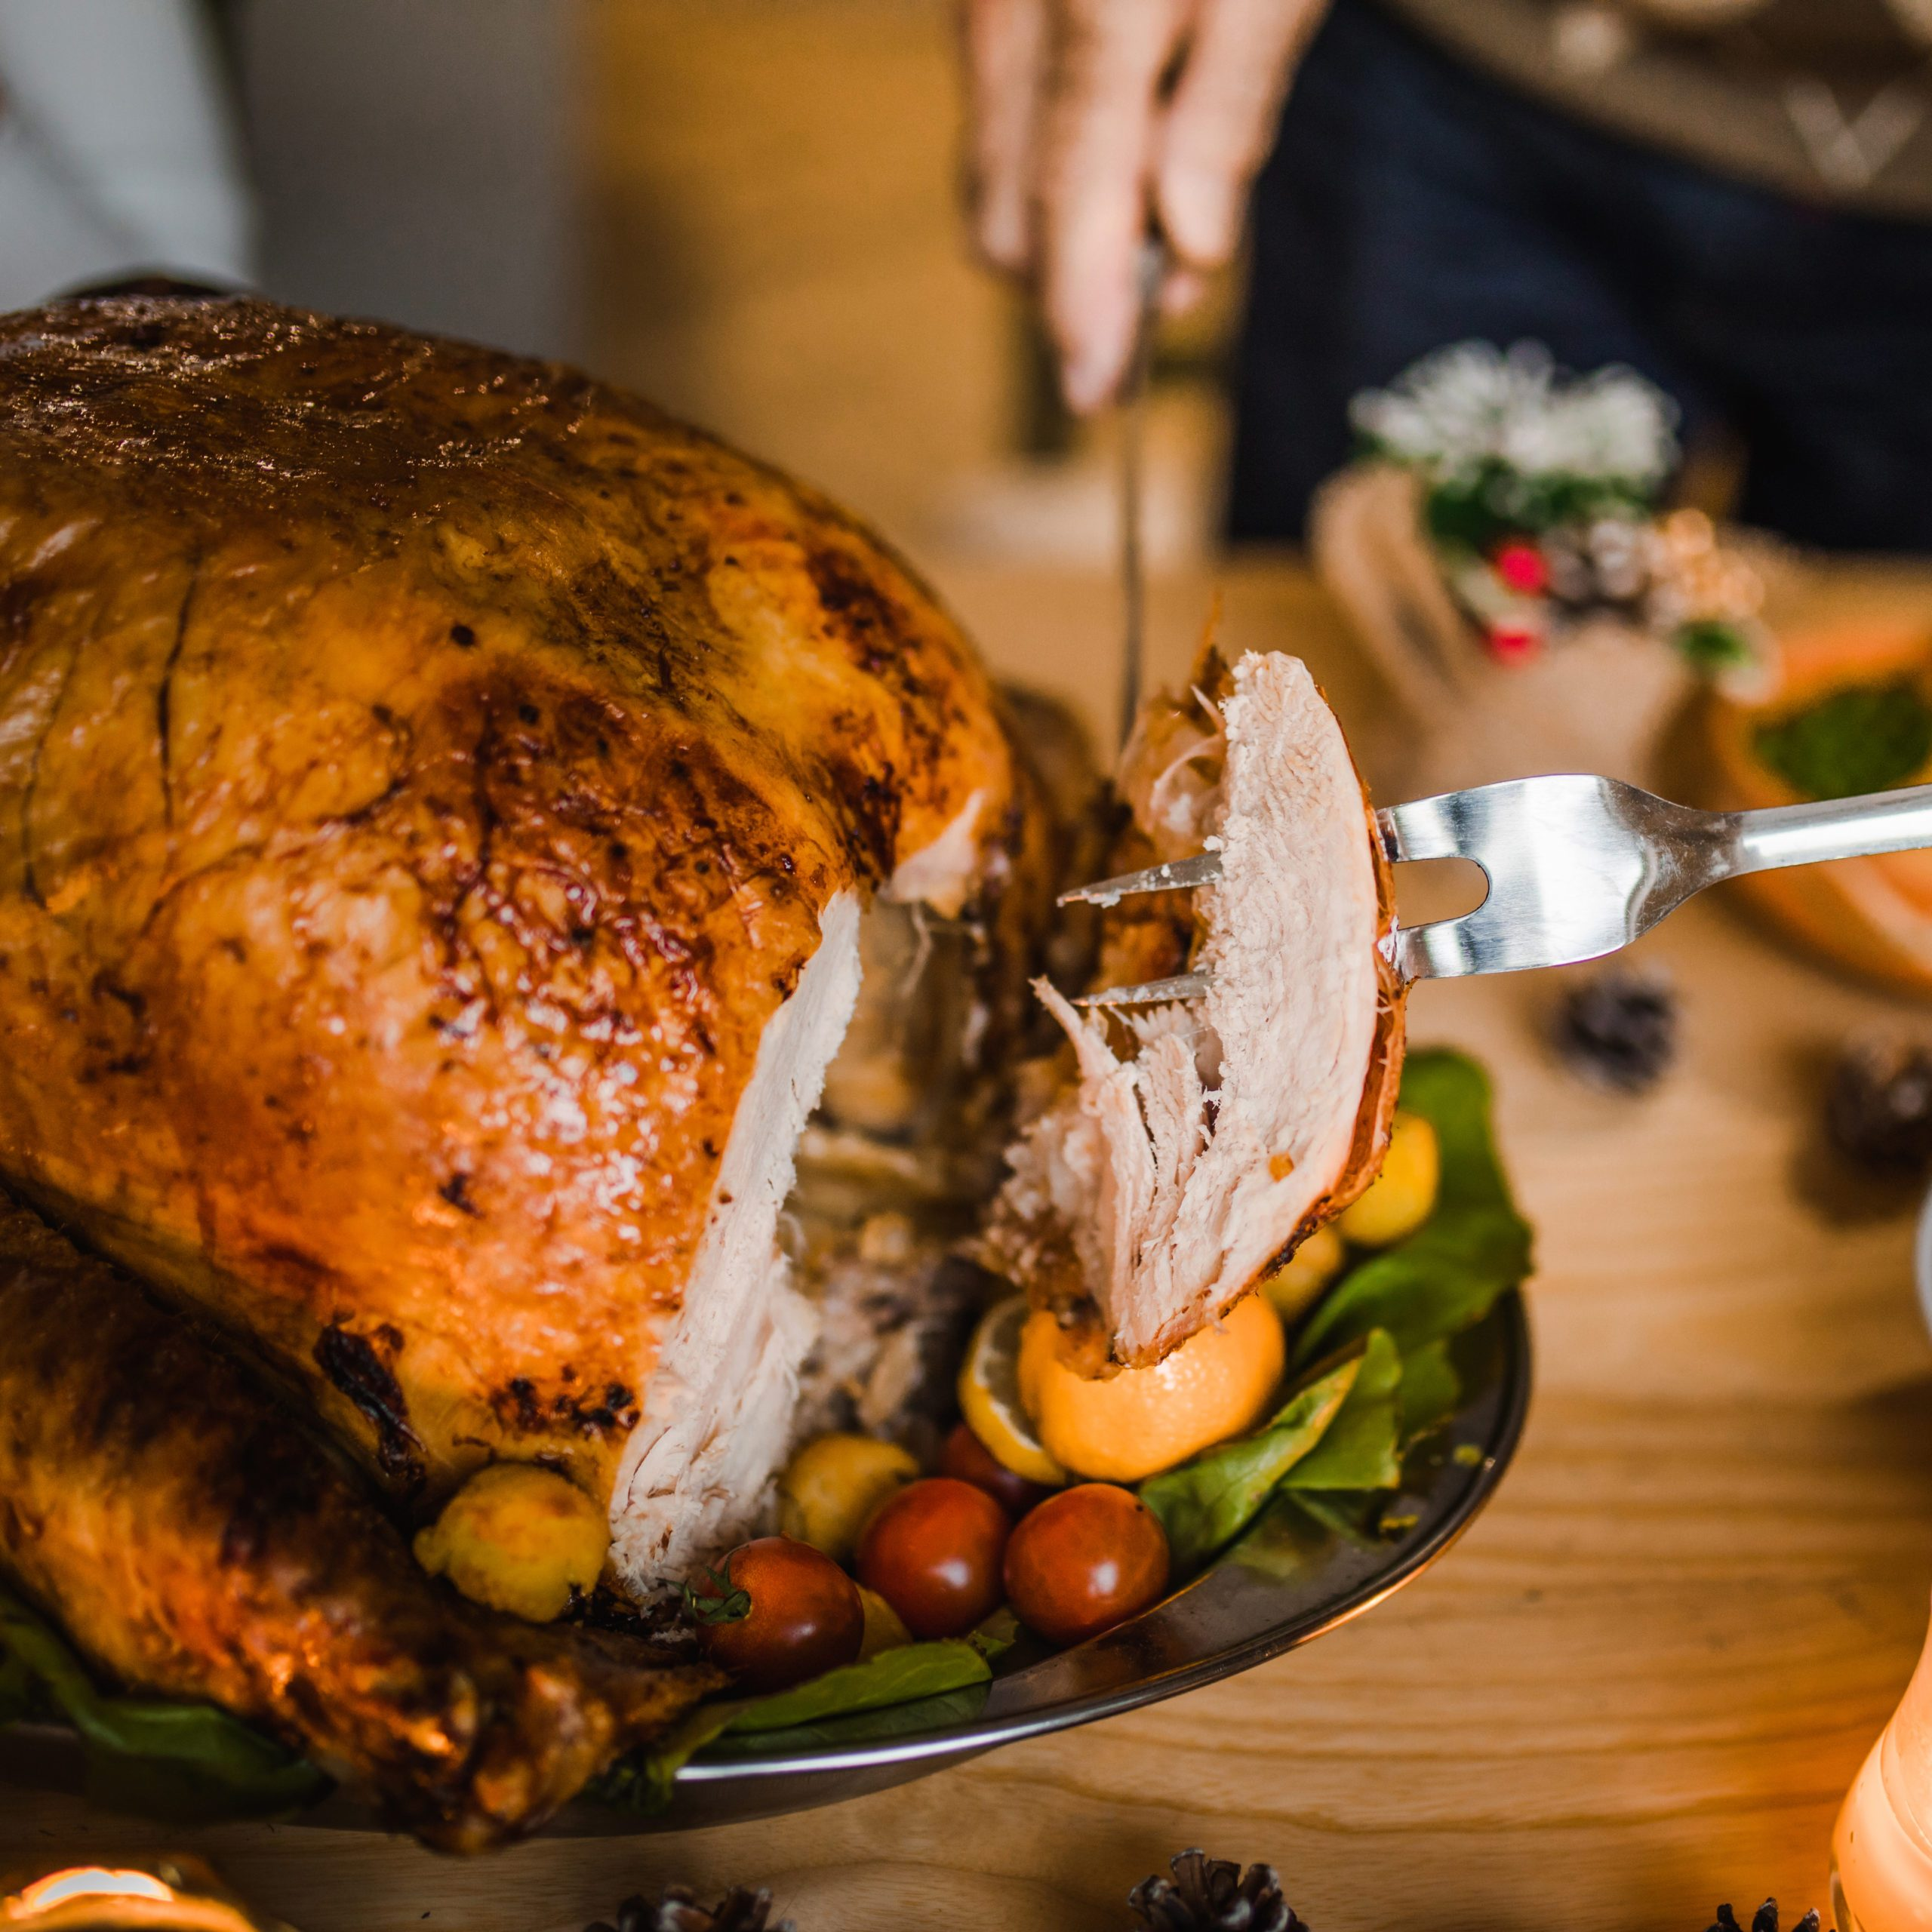 Close up of unrecognizable person carving white meat during dinner at dining table.